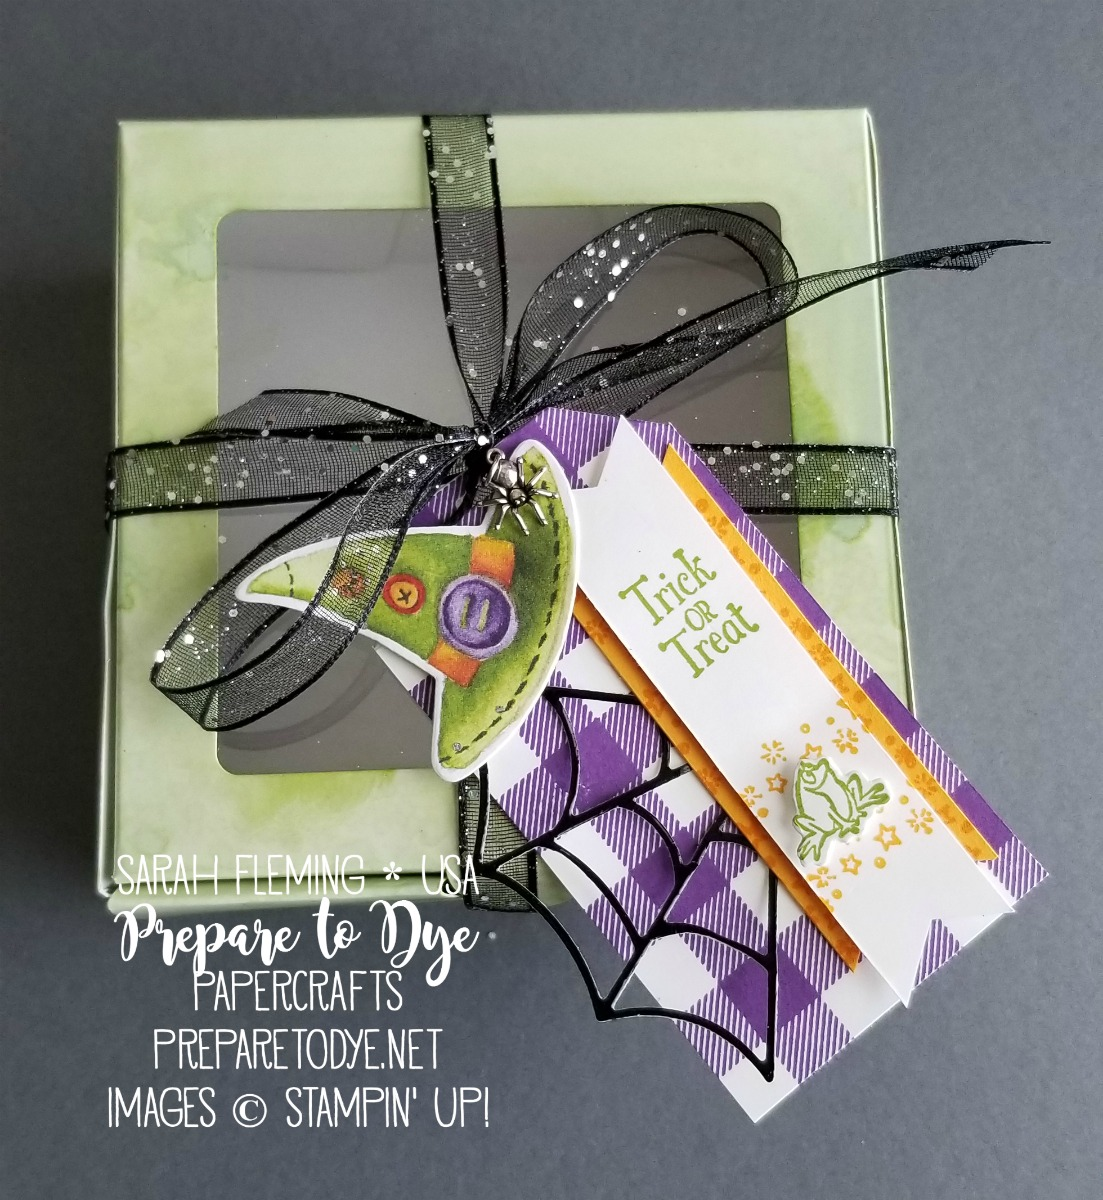 Stampin' Up! Halloween baker's box with handmade tag using Toil & Trouble paper, Cauldron Bubble bundle, Cauldron framelits, Glittered Organdy Ribbon, Buffalo Check Background Stamp, Spider Trinkets - Sarah Fleming - Prepare to Dye Papercrafts